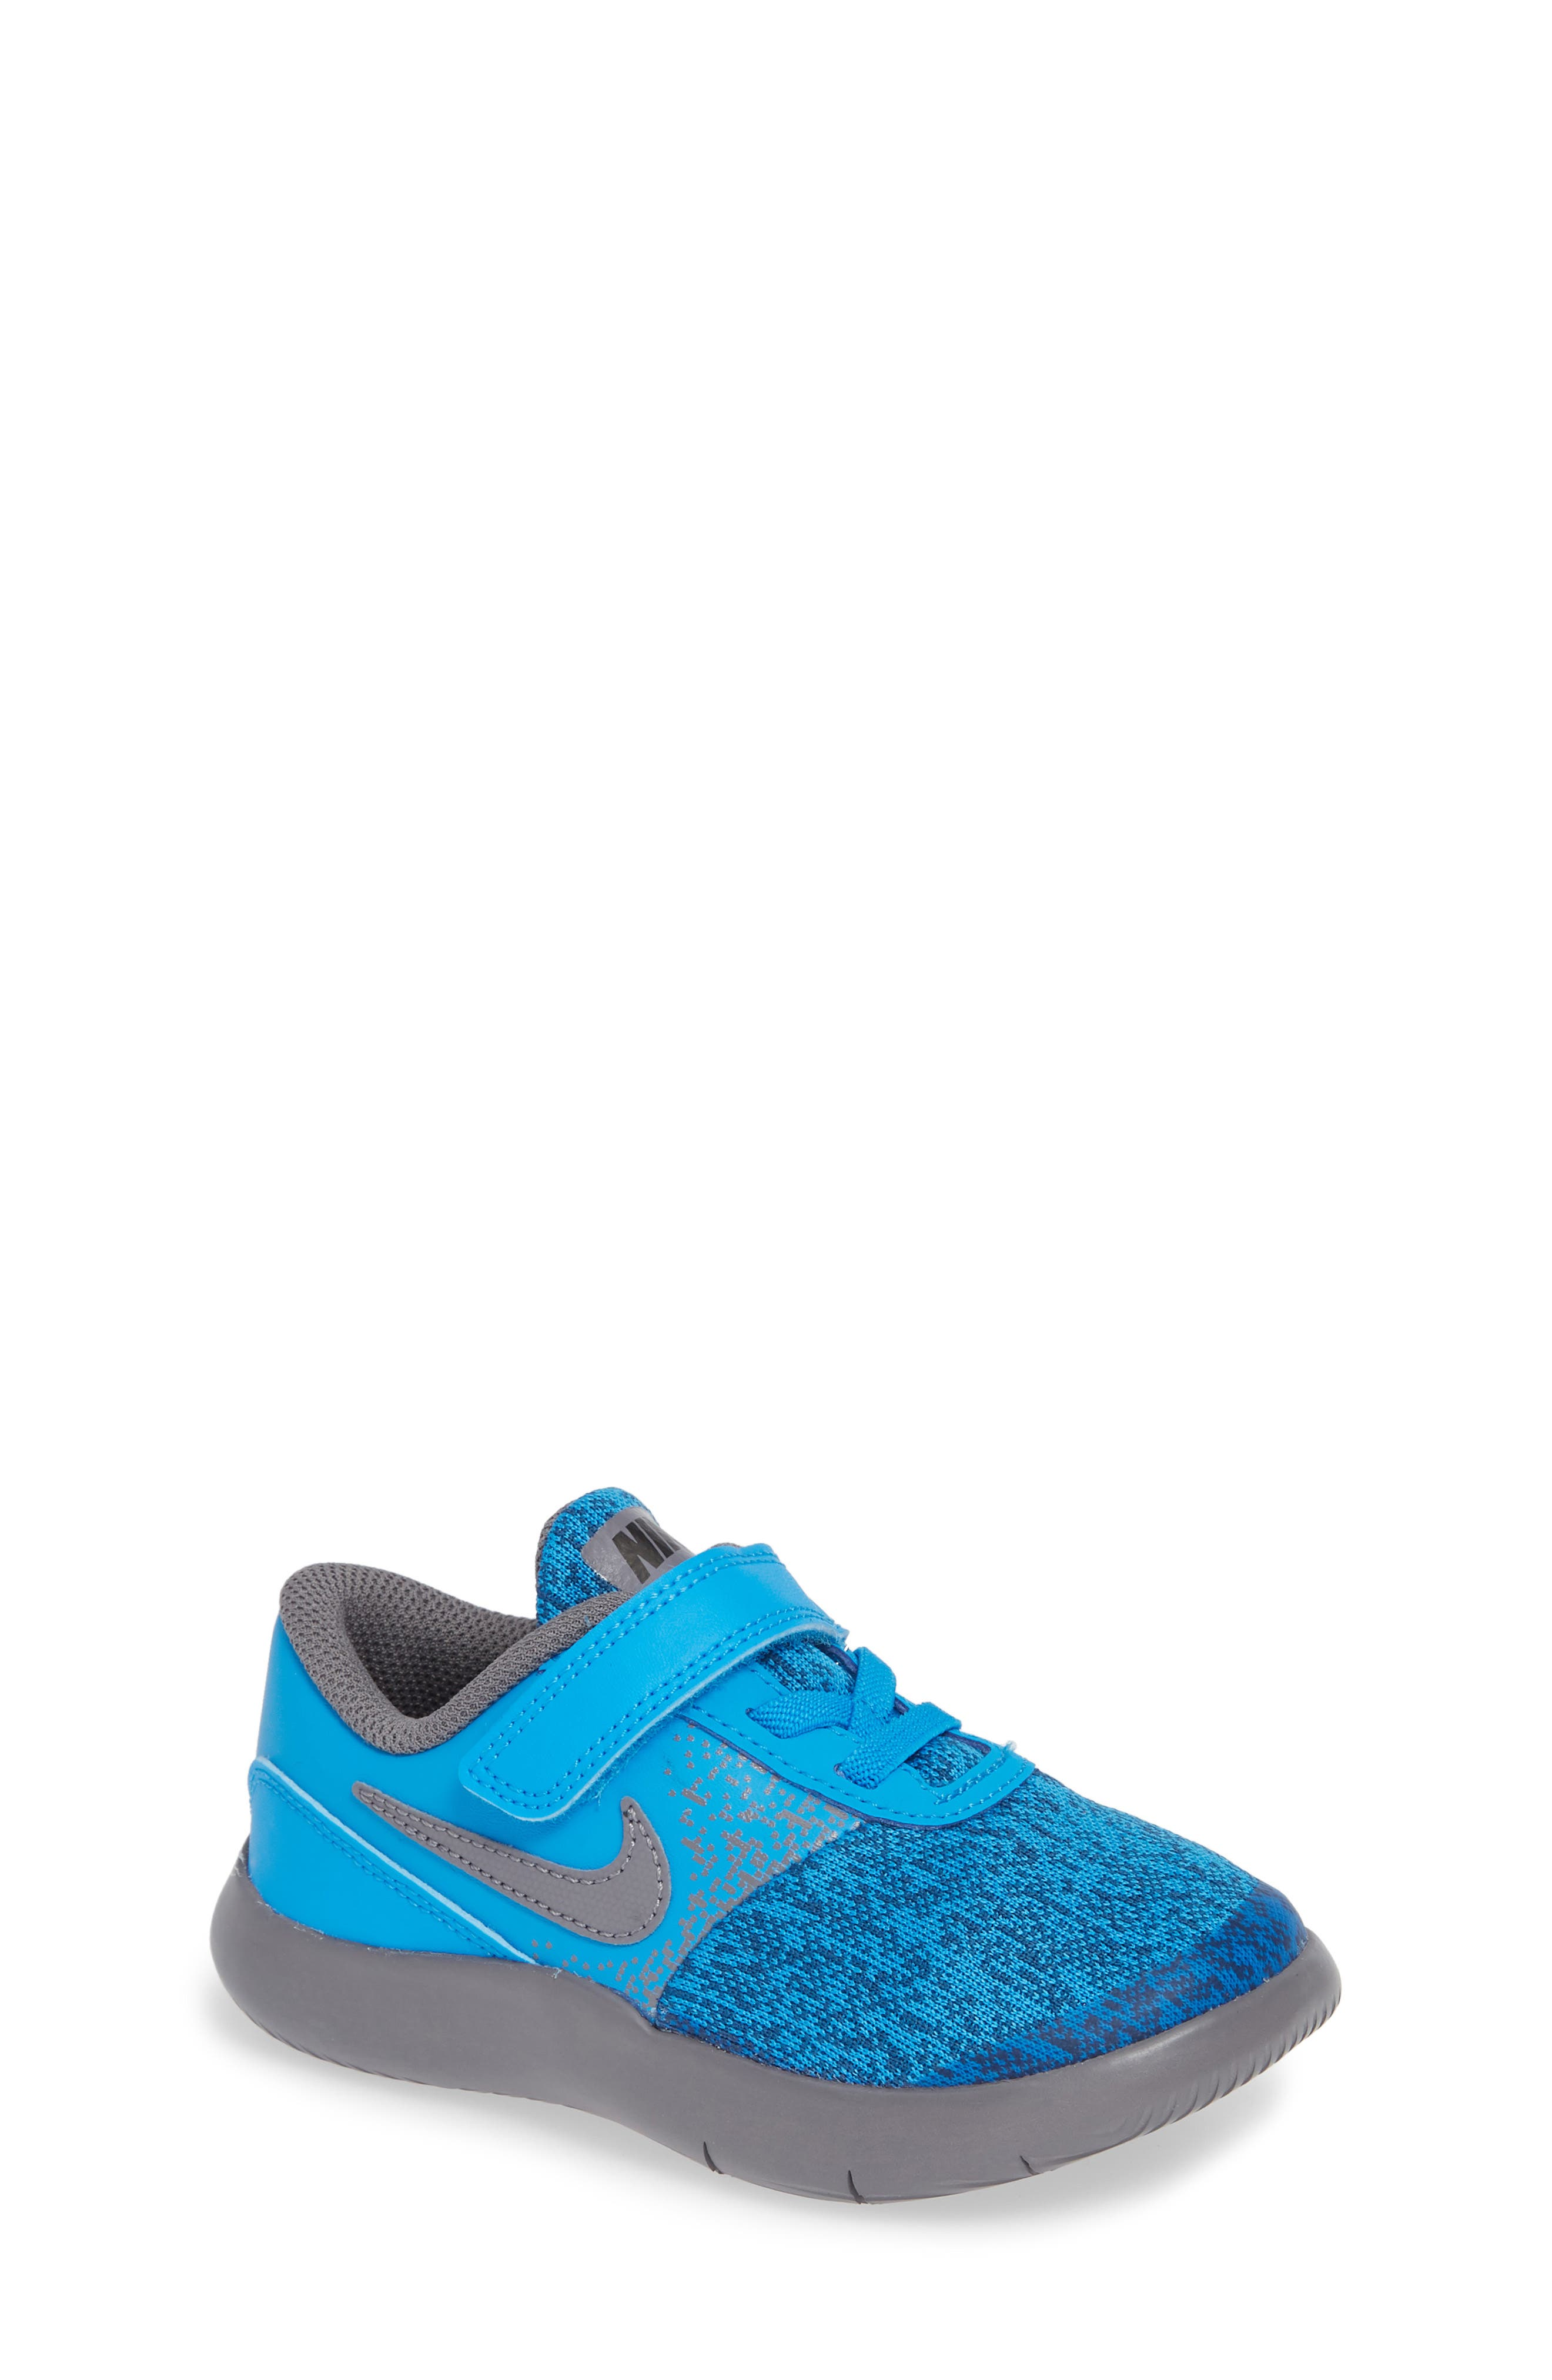 Flex Contact Running Shoe,                         Main,                         color, BLUE HERO/ GUNSMOKE/ GREEN